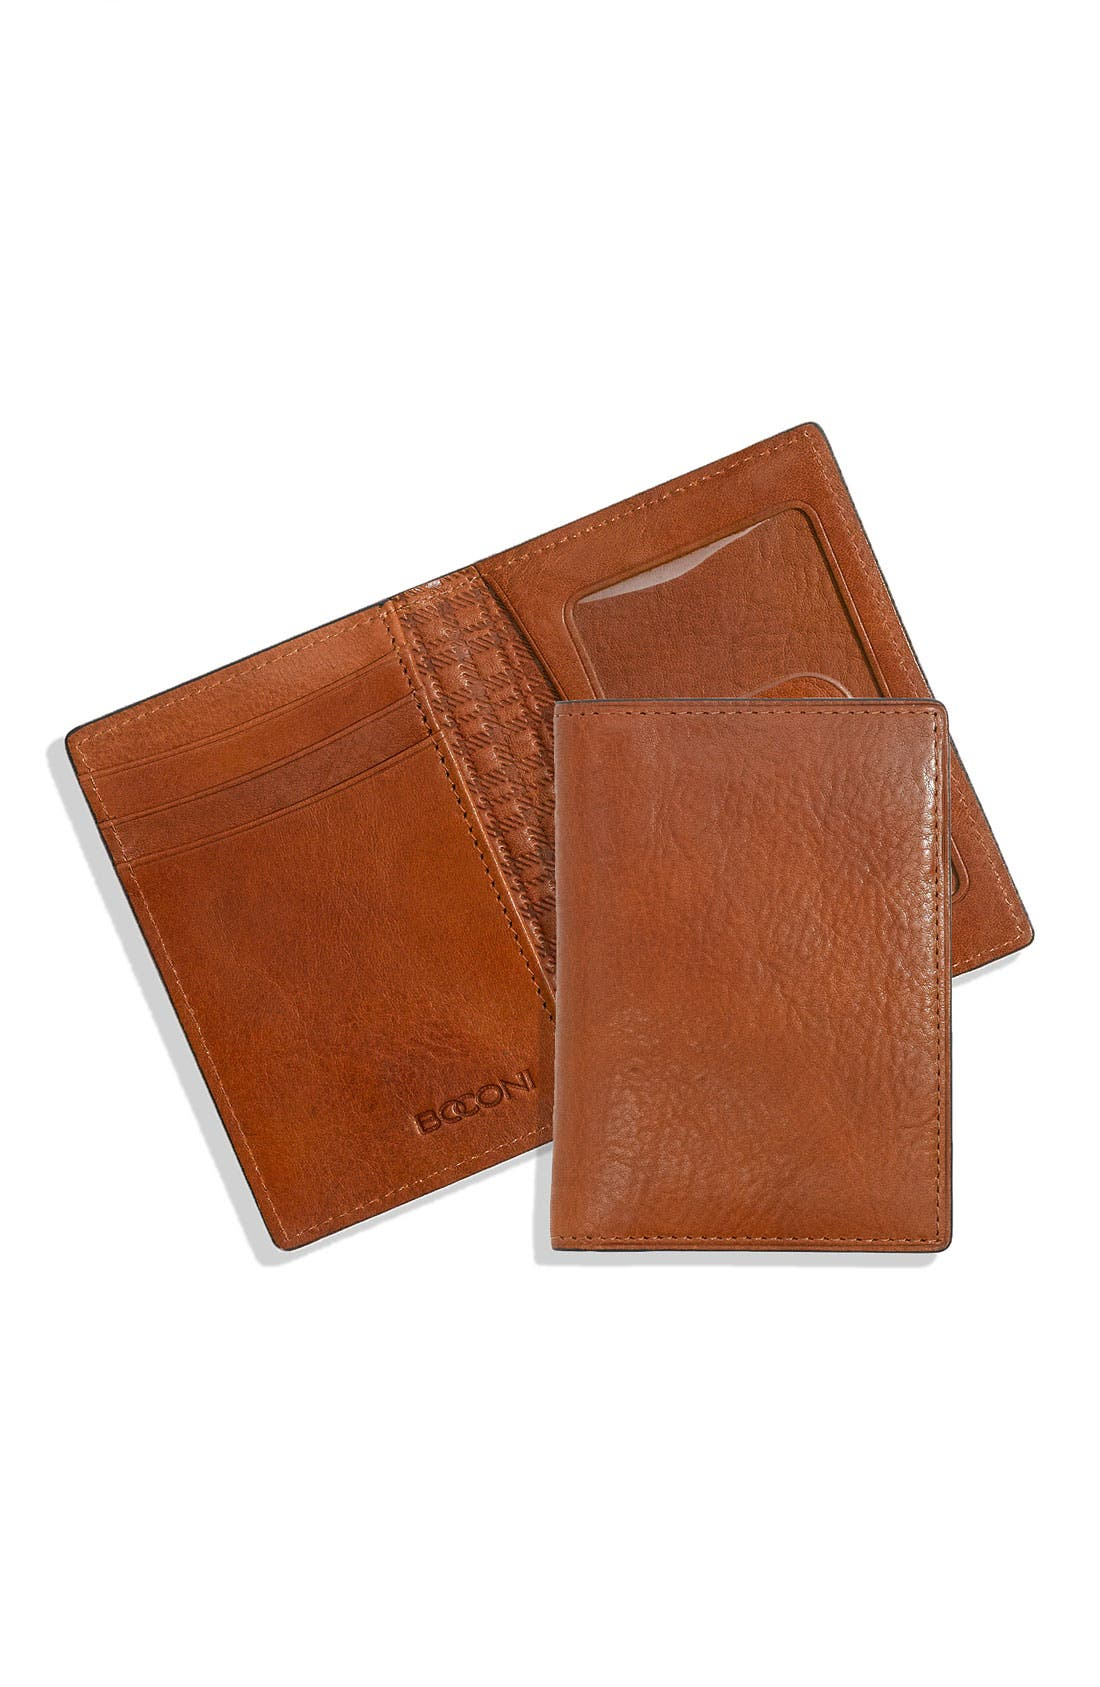 Alternate Image 1 Selected - Boconi 'Rinaldo' Slim Card Case